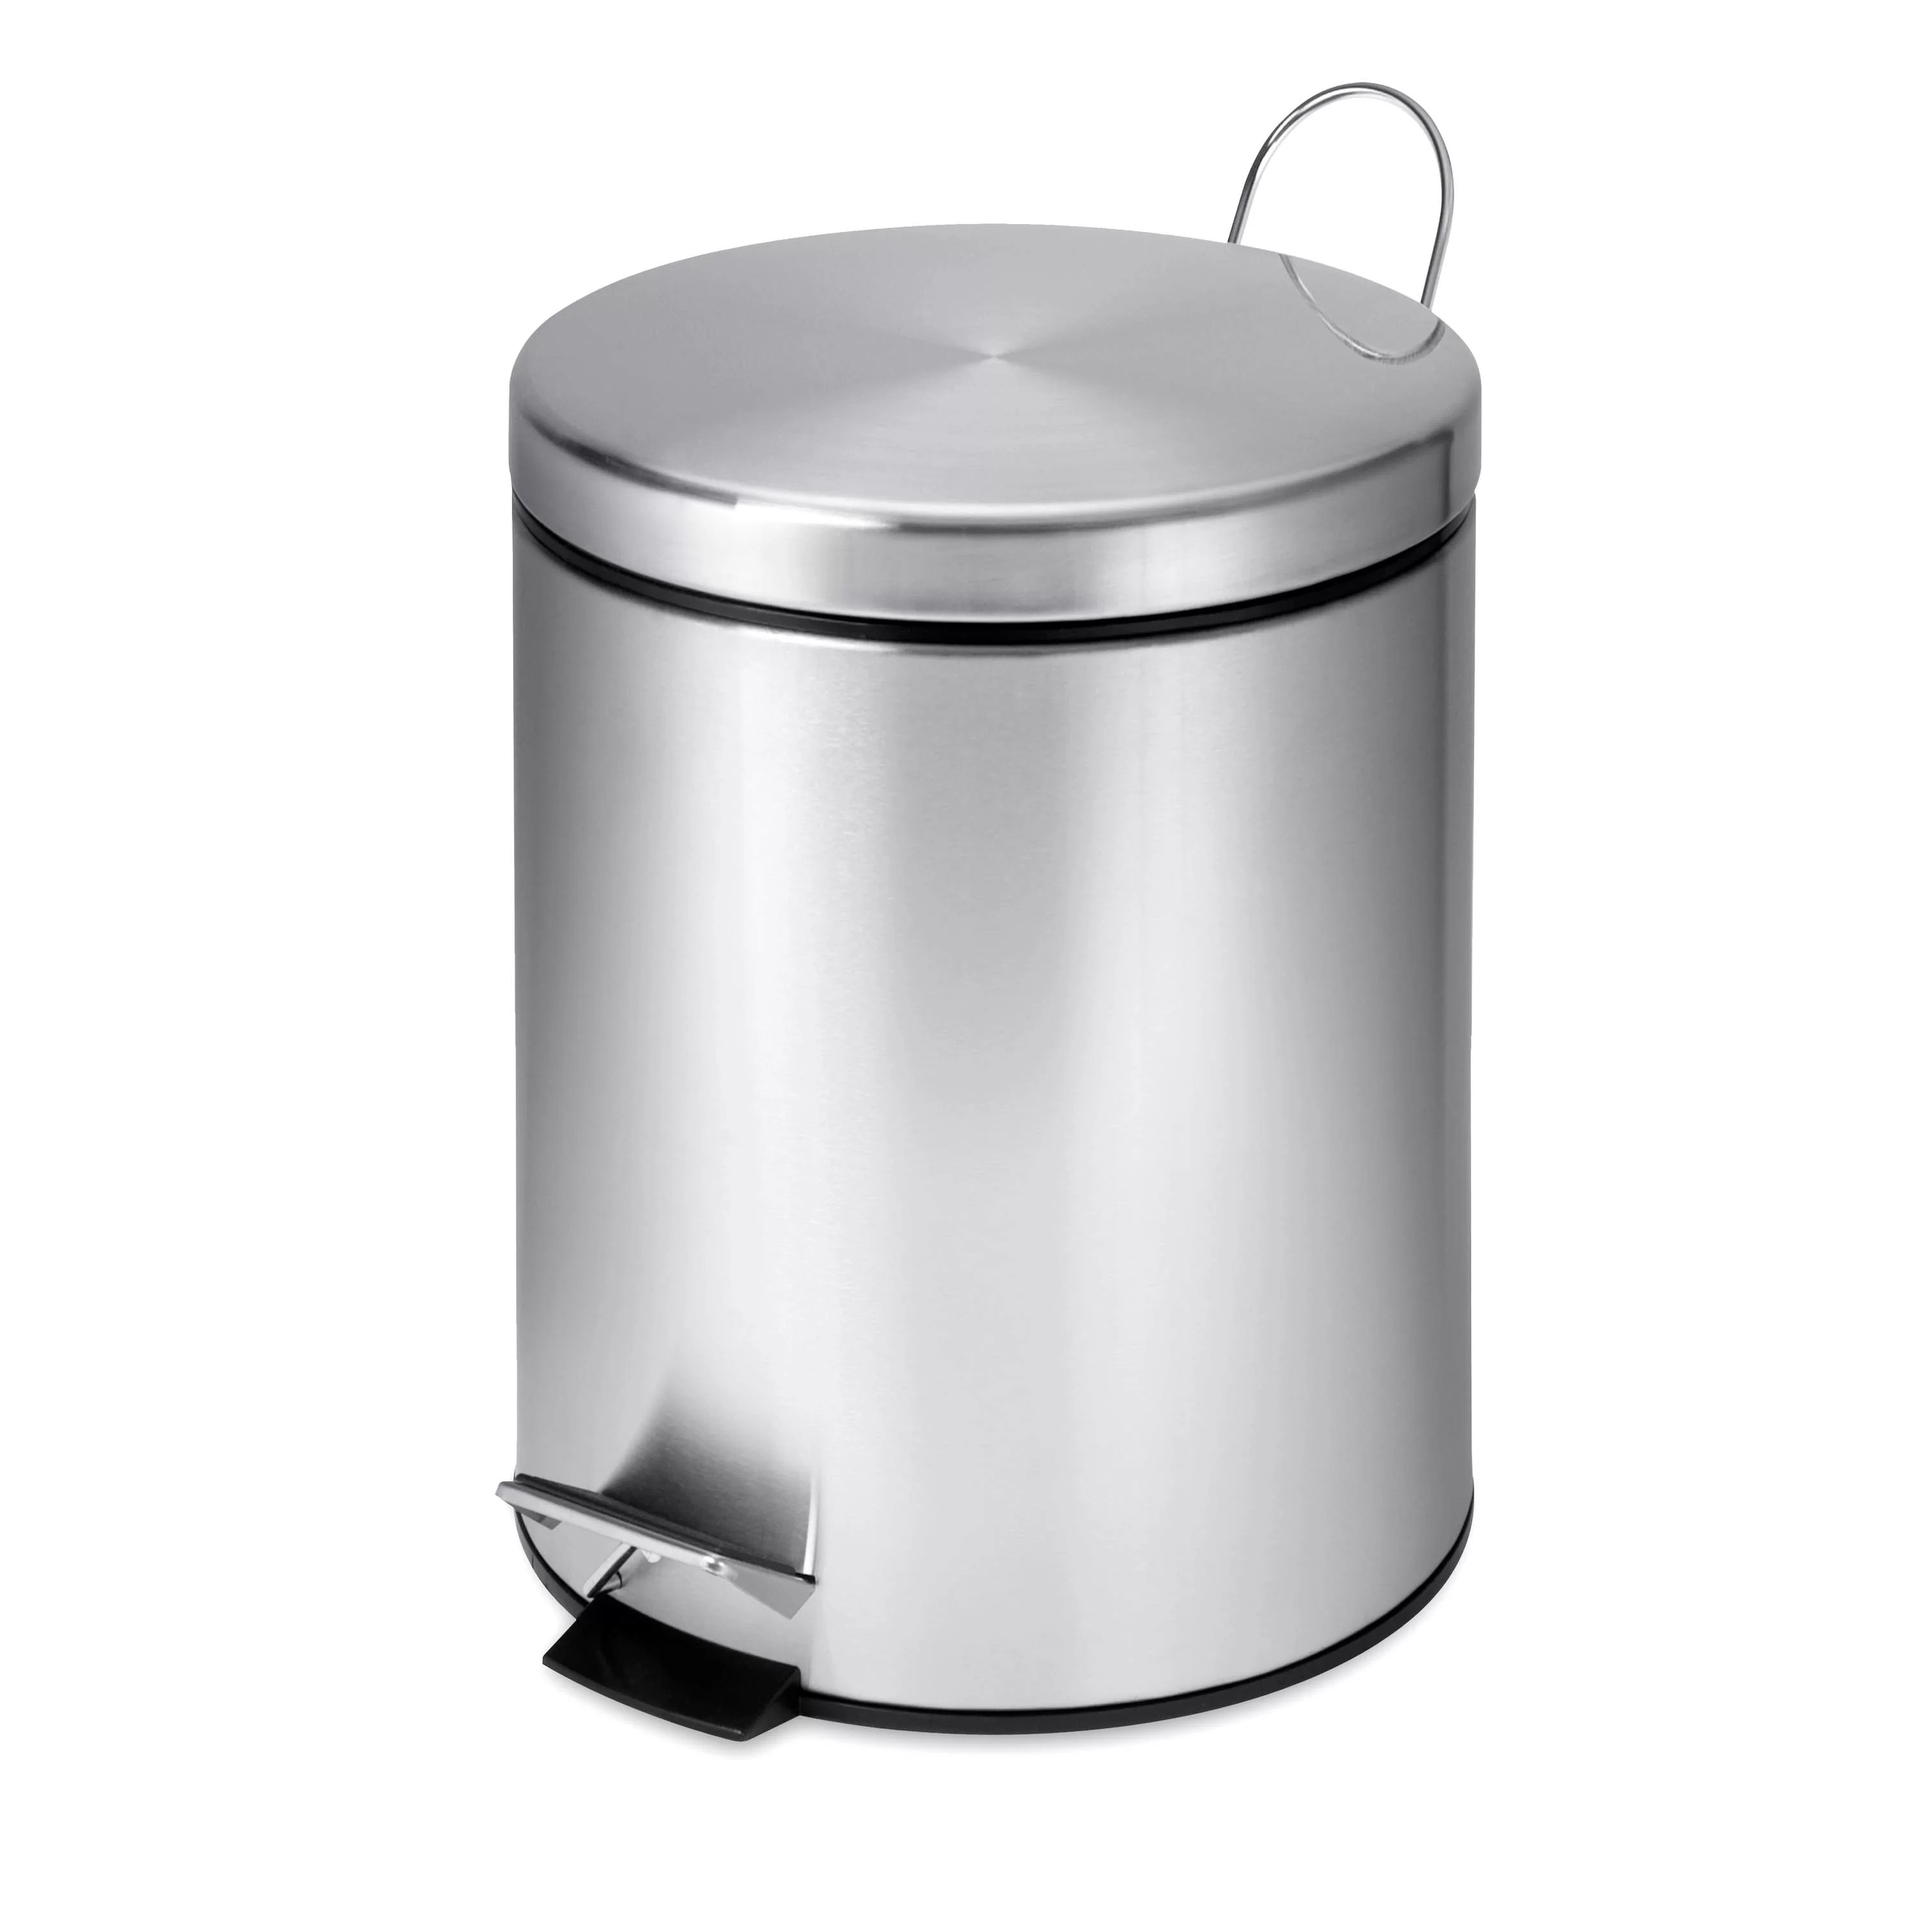 Elegant Trash Can Stainless Steel 1 32 Gallon Step On Trash Can